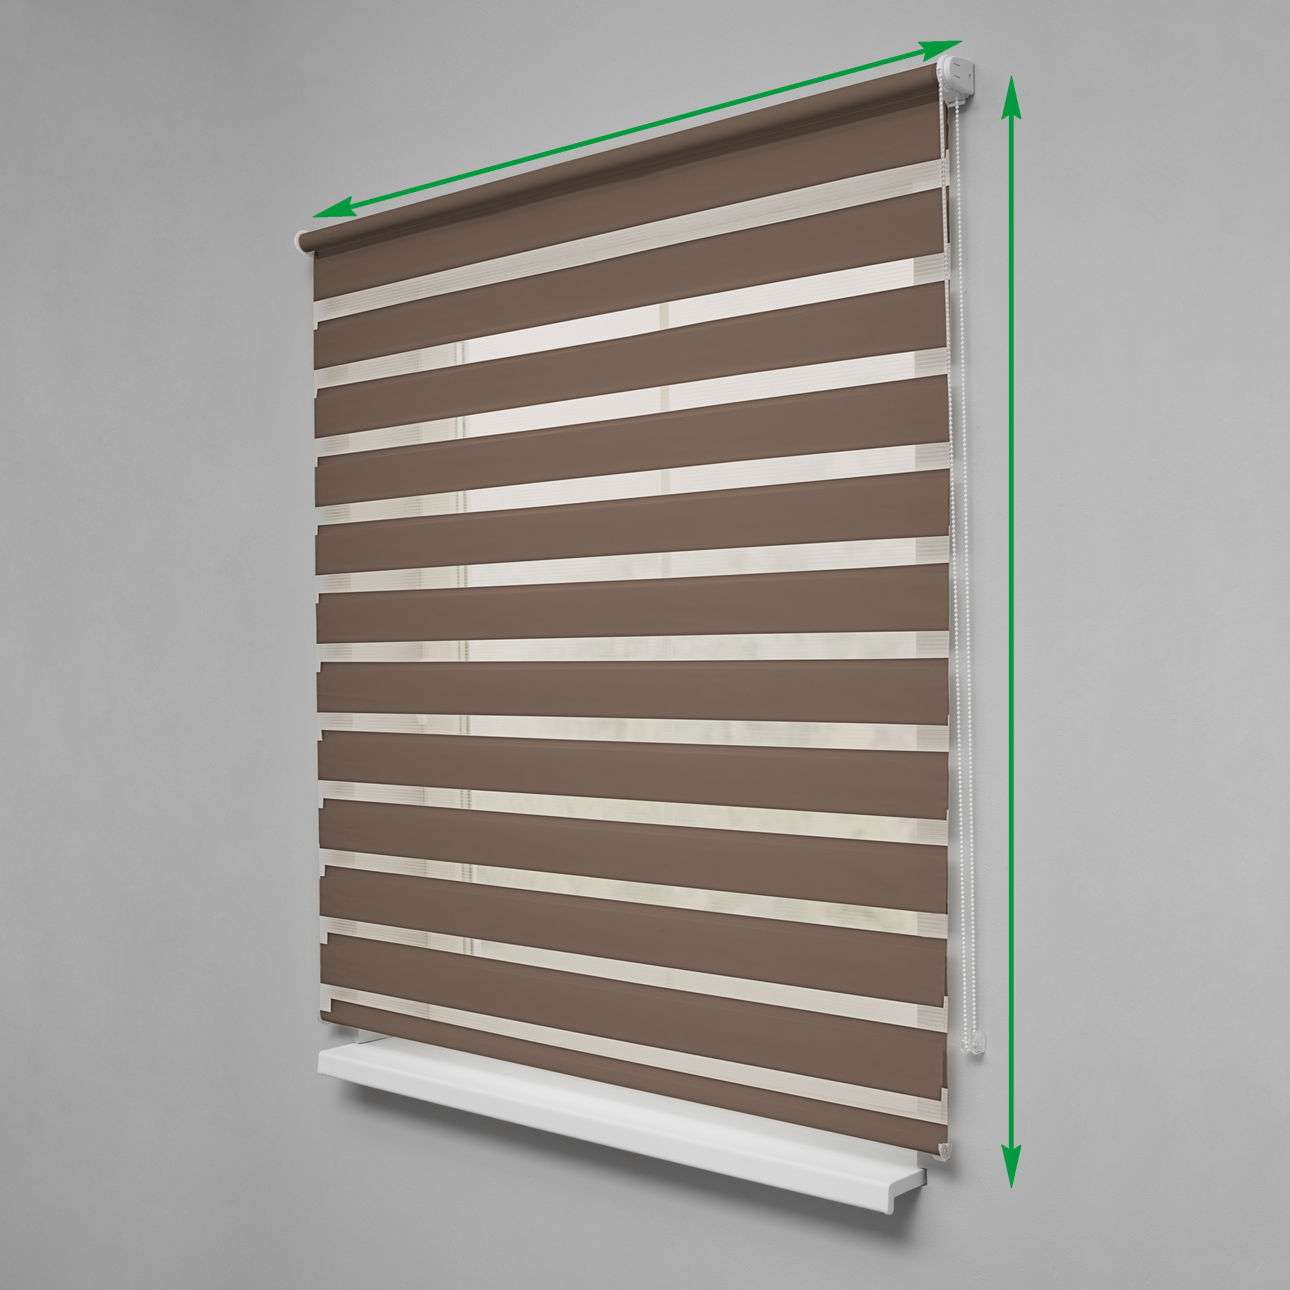 Day & Night Roller Blind in collection Roller blinds Day & Night (Venetian blind), fabric: 0106